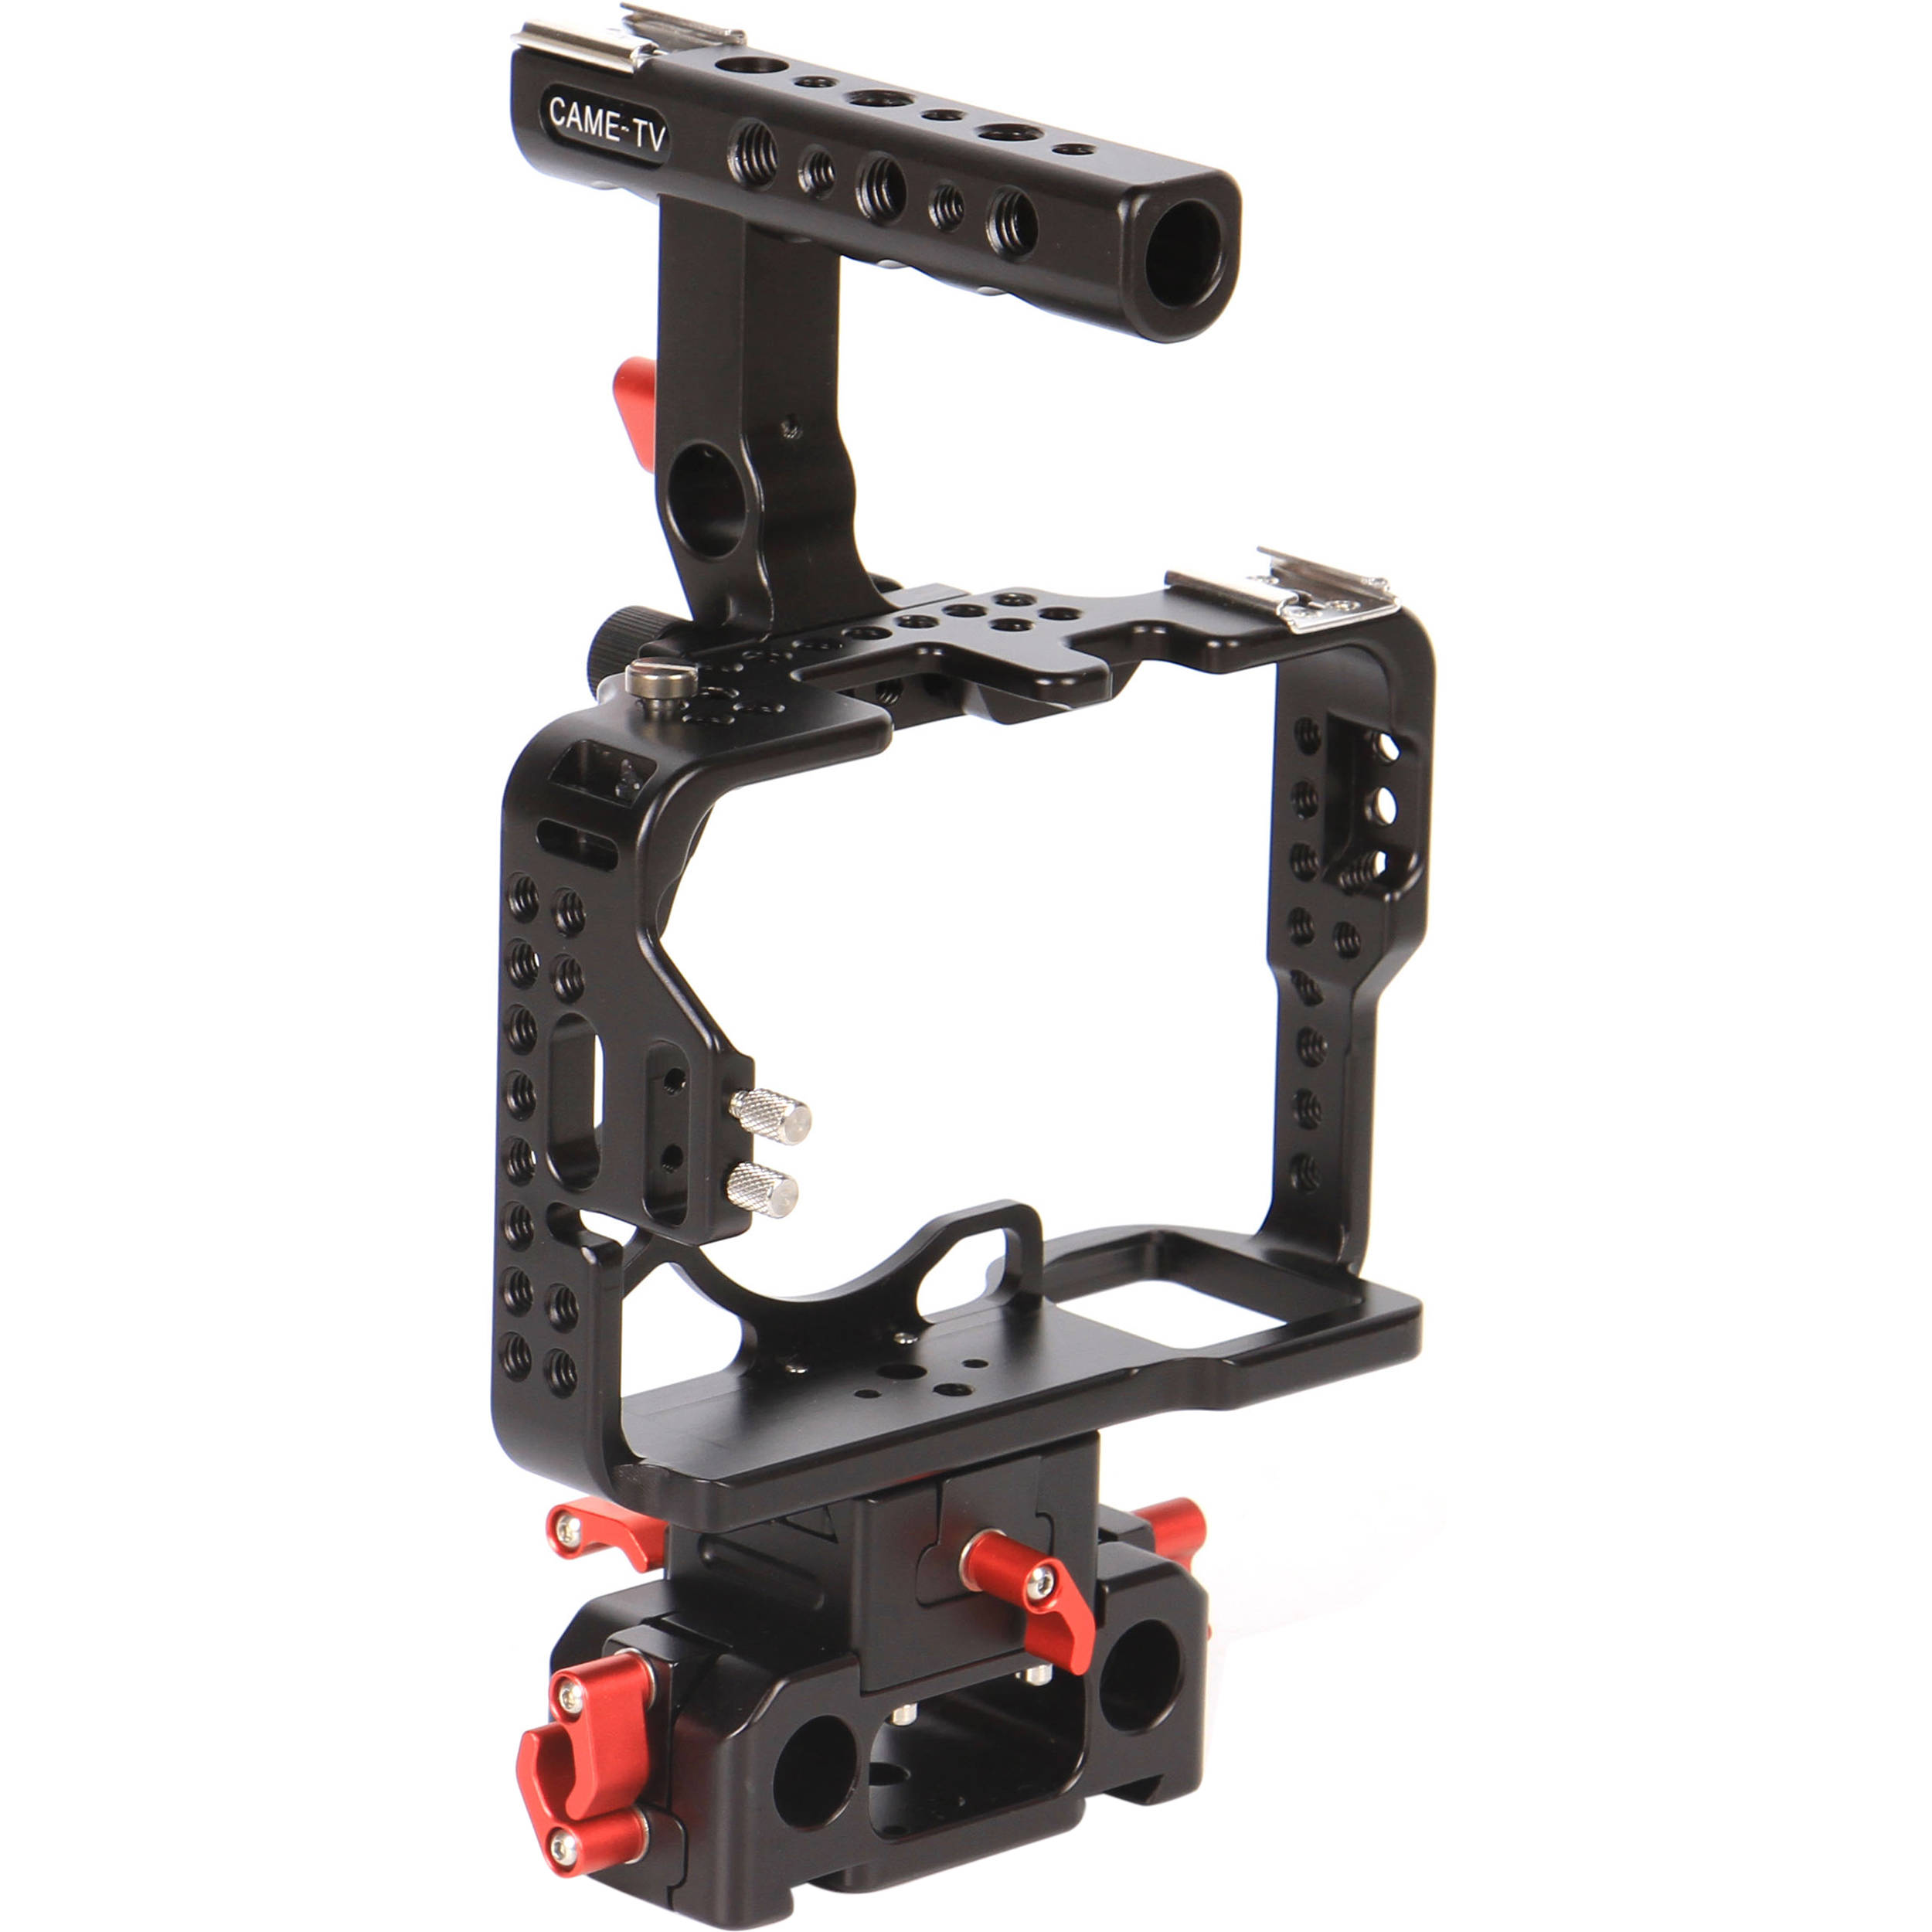 CAME-TV H-A7R2 Cage for Sony a7S II/a7R II